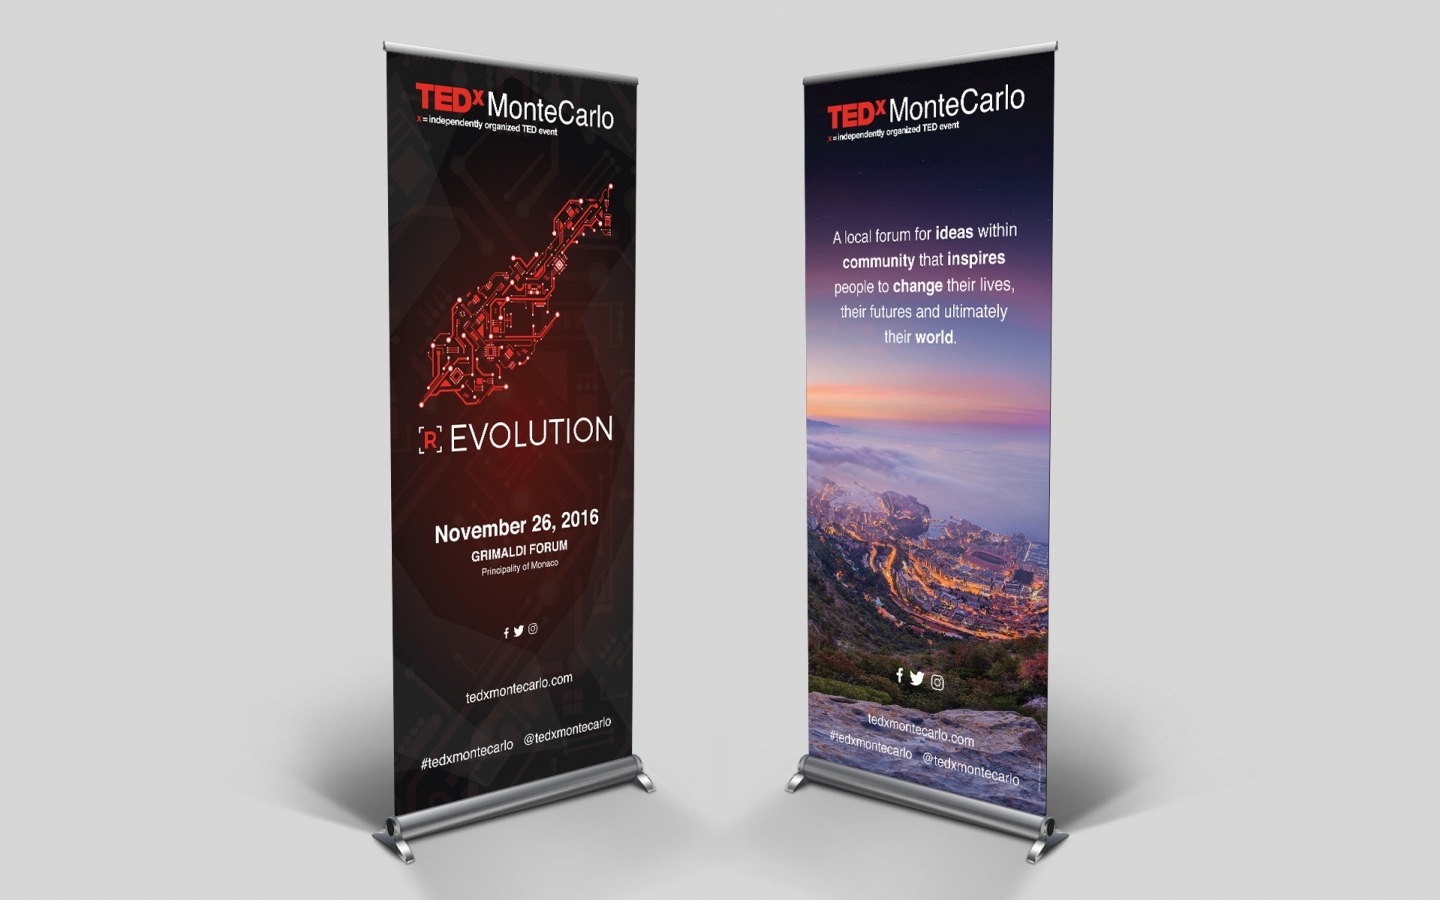 TEDxMonteCarlo 2016 Branding Project by Crevisio